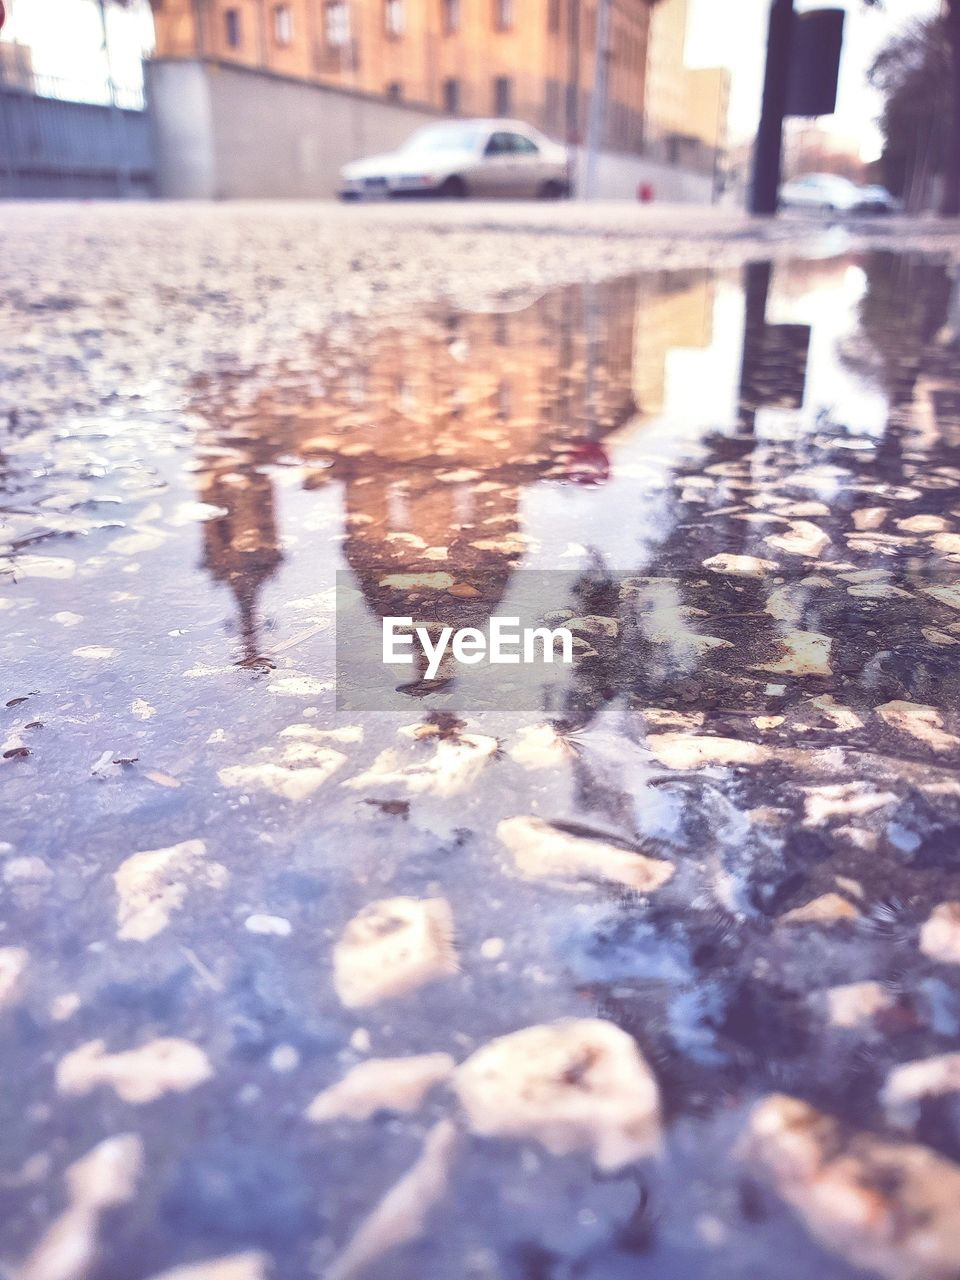 CLOSE-UP OF REFLECTION IN PUDDLE